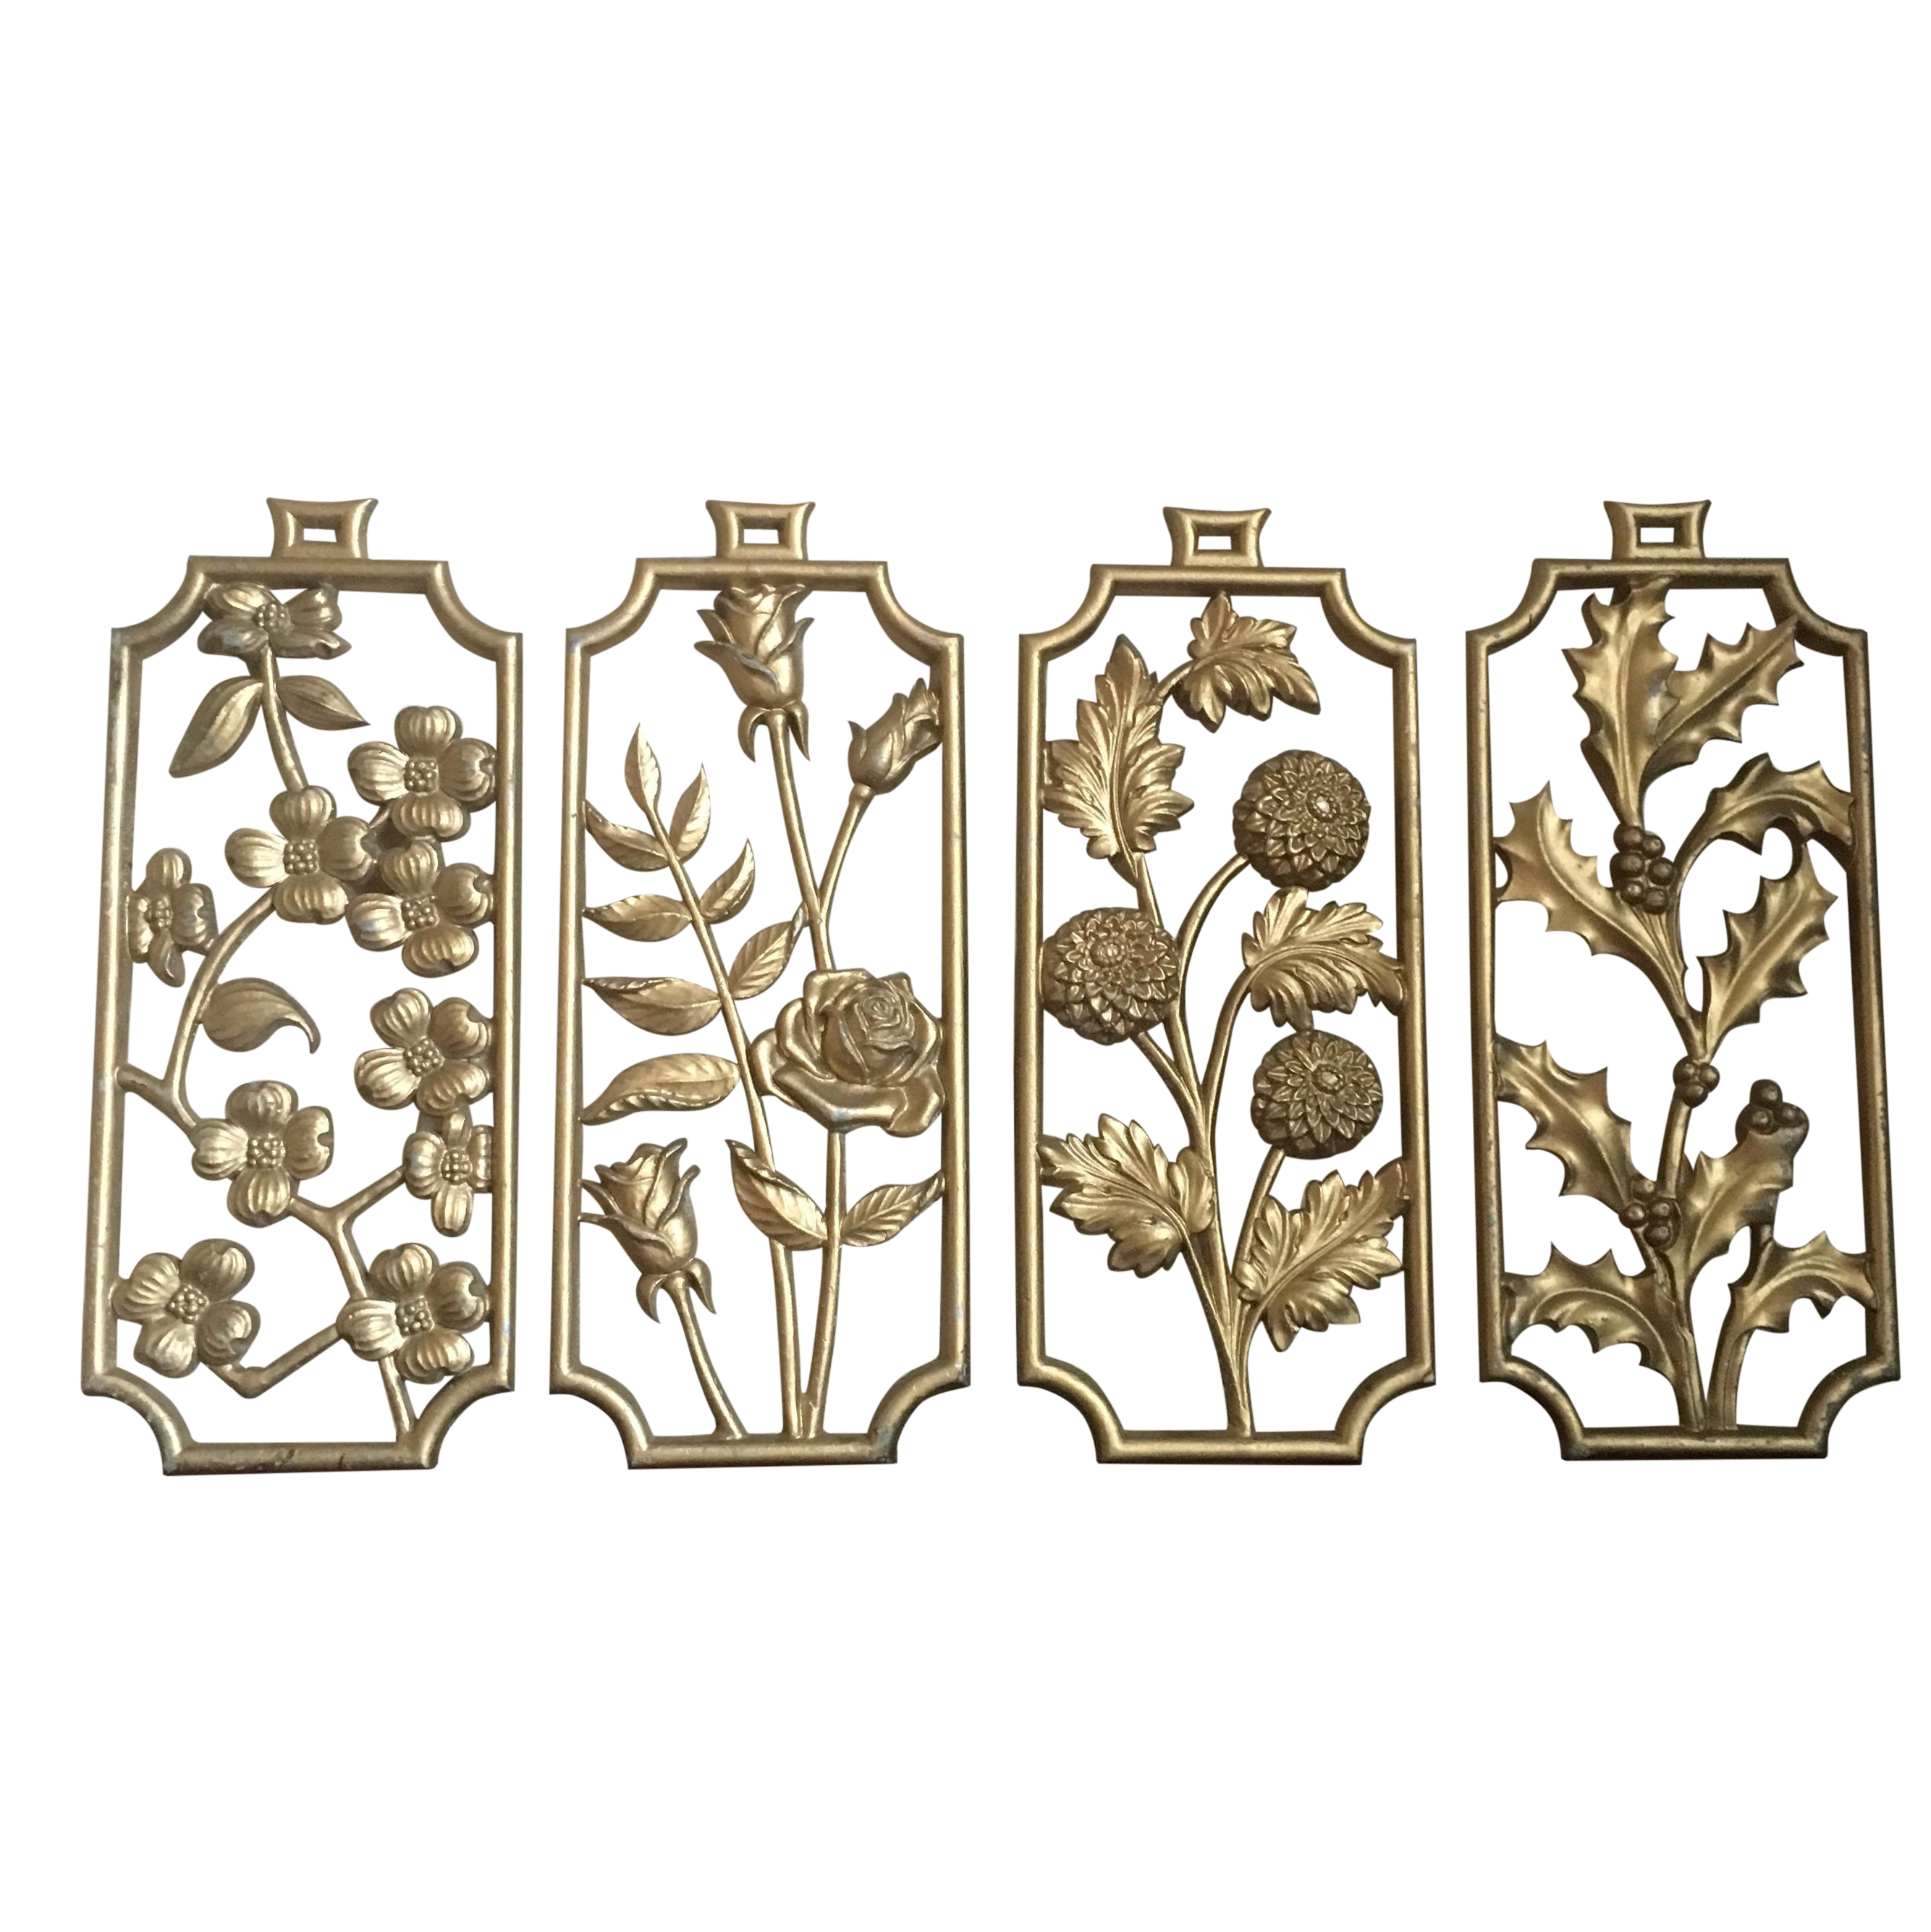 Vintage Sexton Gold Four Seasons Floral Wall Decor Chairish